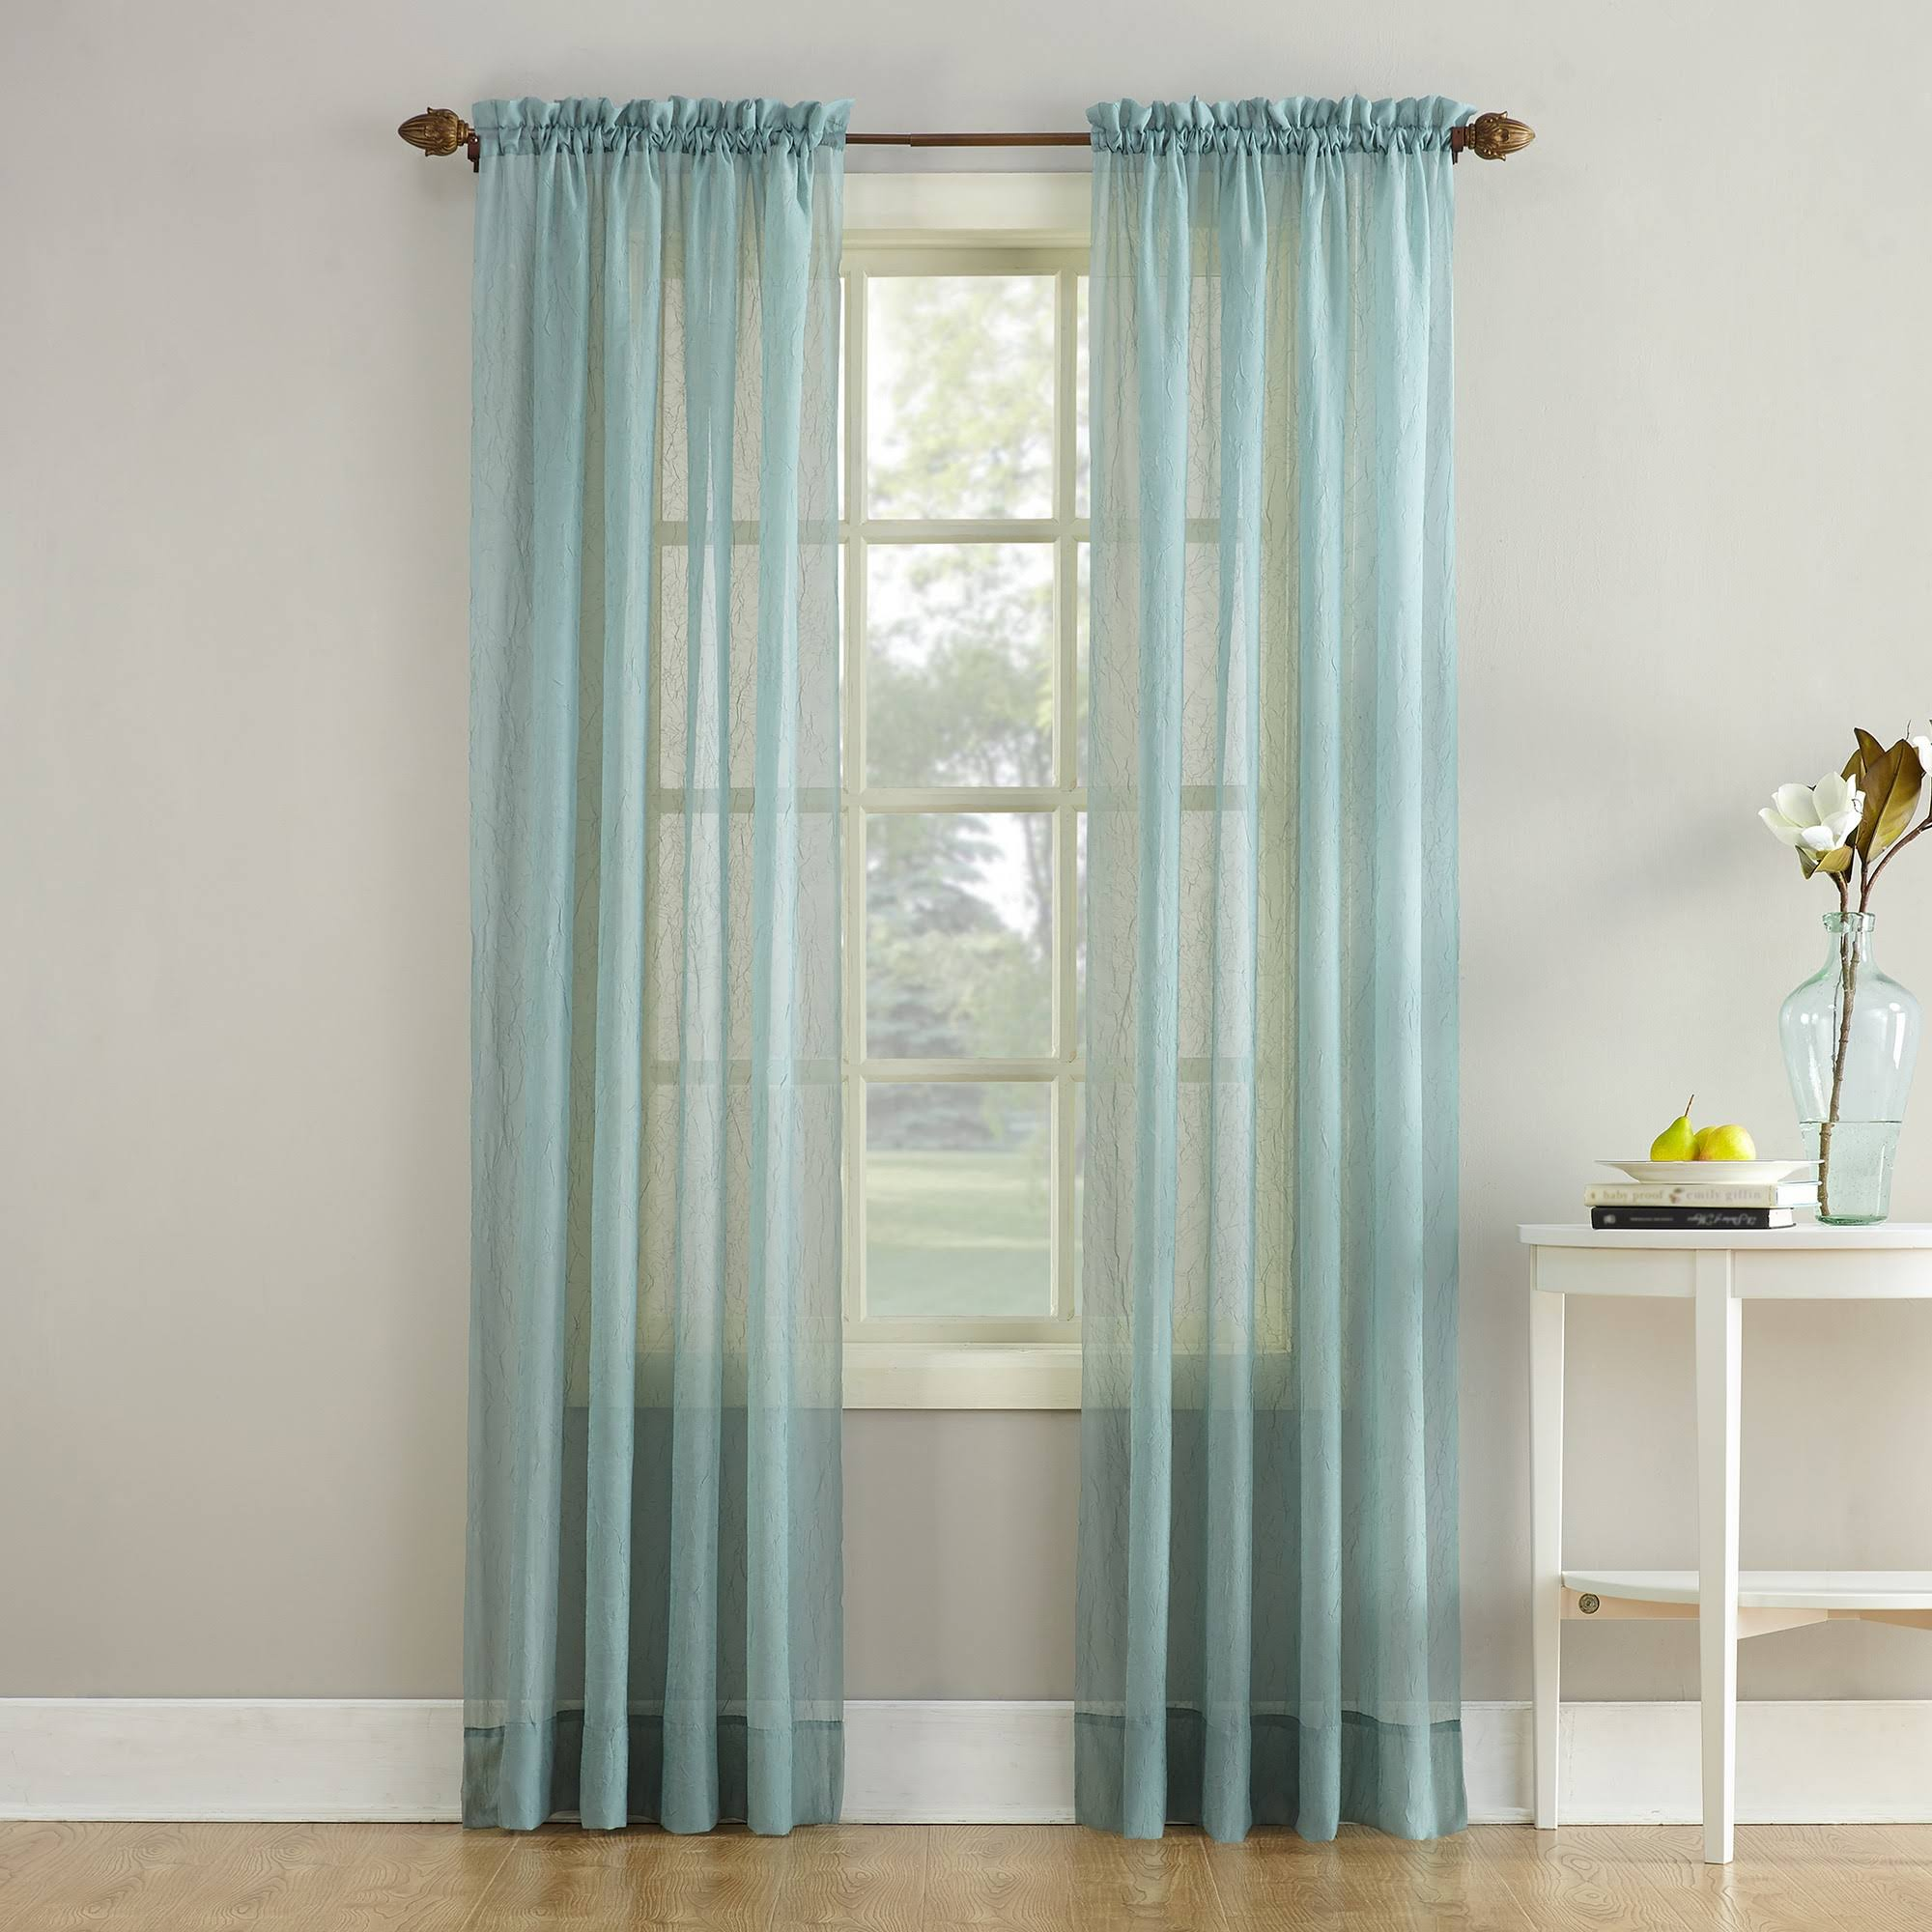 "No. 918 Erica Crush Sheer Voile Curtain Panel - 51""x 84"""